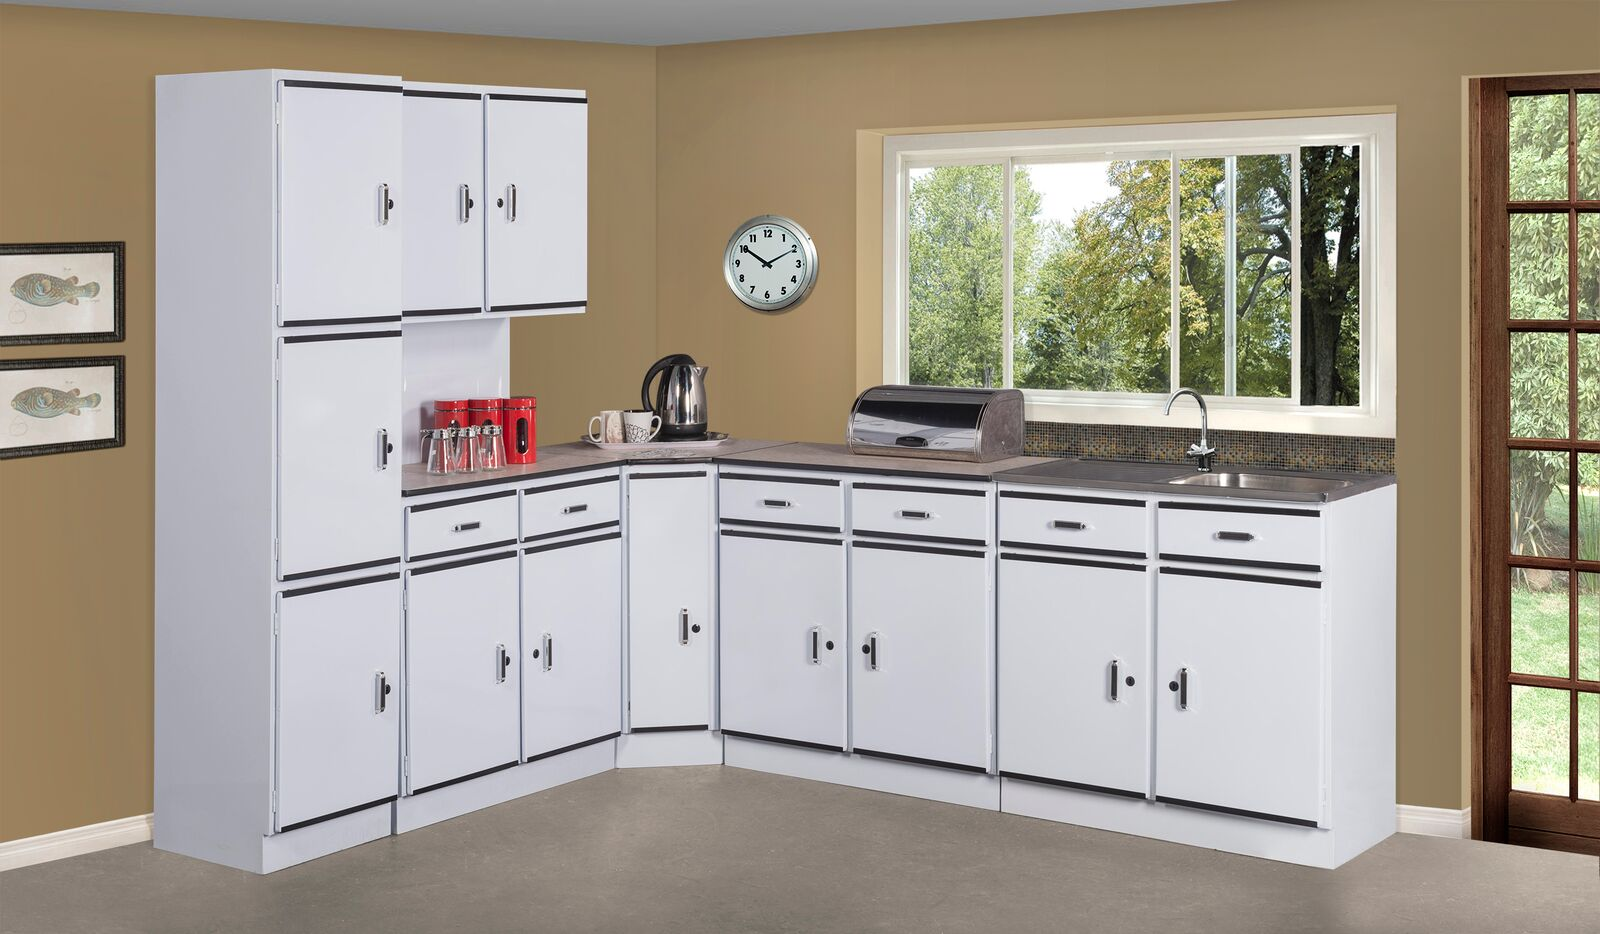 5 Piece Angela Black Kitchen Scheme